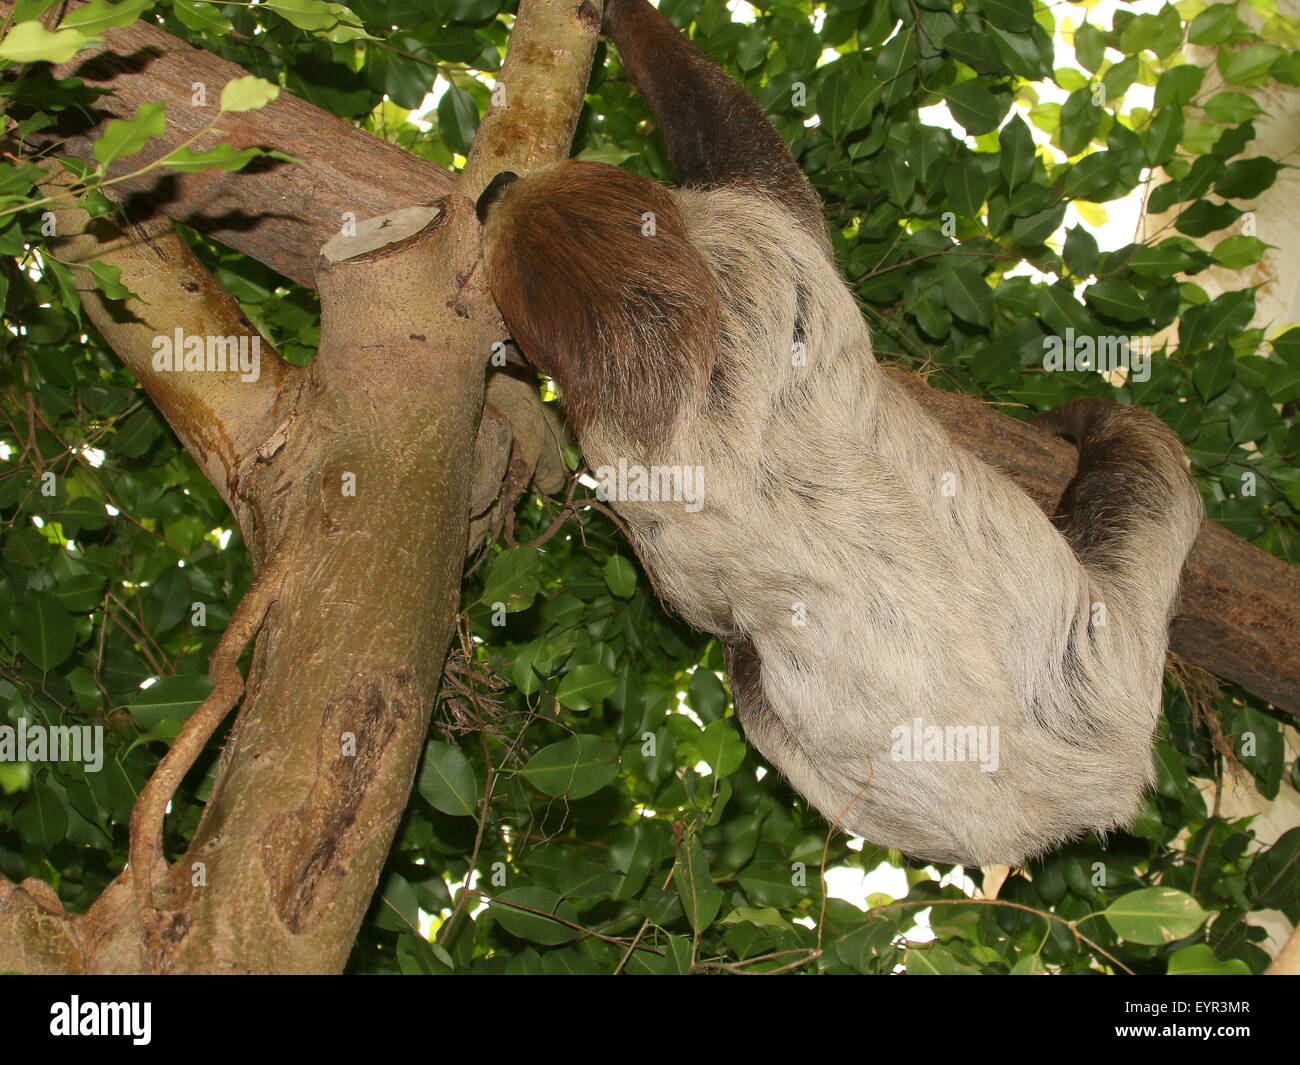 South American Linnaeus's two toed sloth or Southern two-toed sloth (Choloepus didactylus) Stock Photo